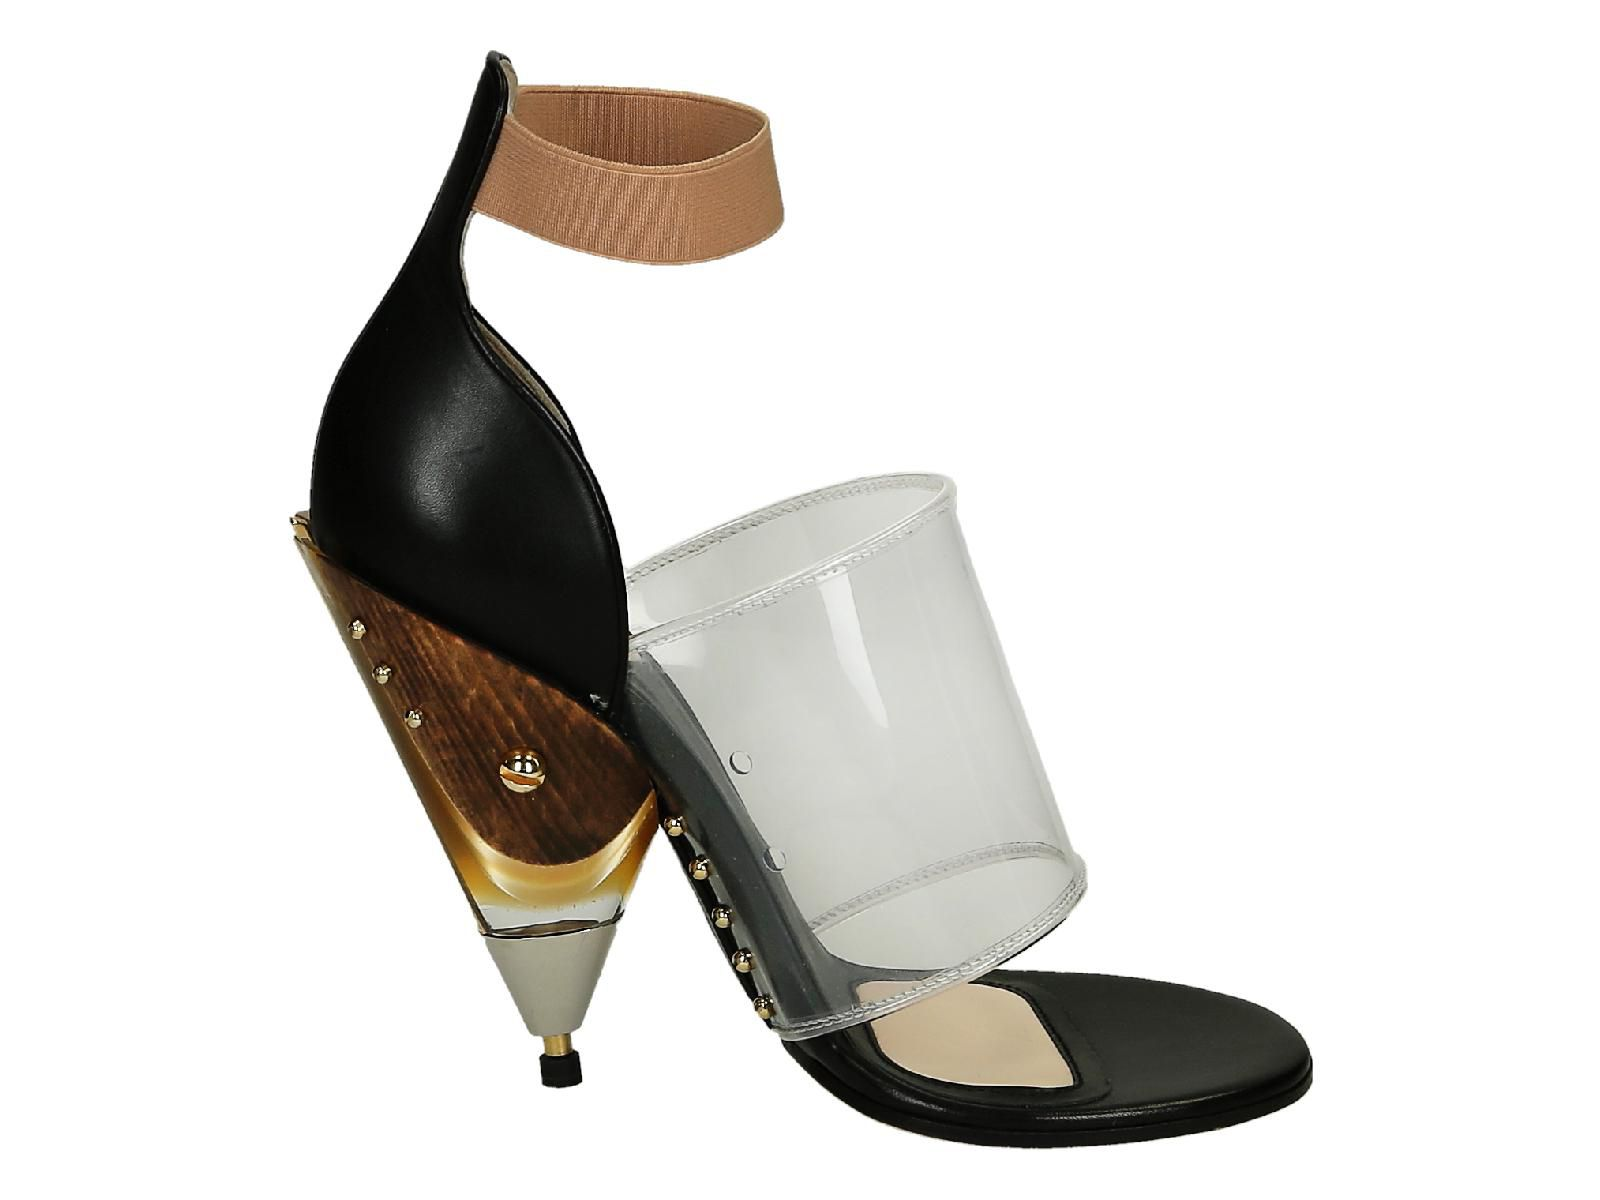 GIVENCHY BLACK LEATHER SANDALS,535945451748